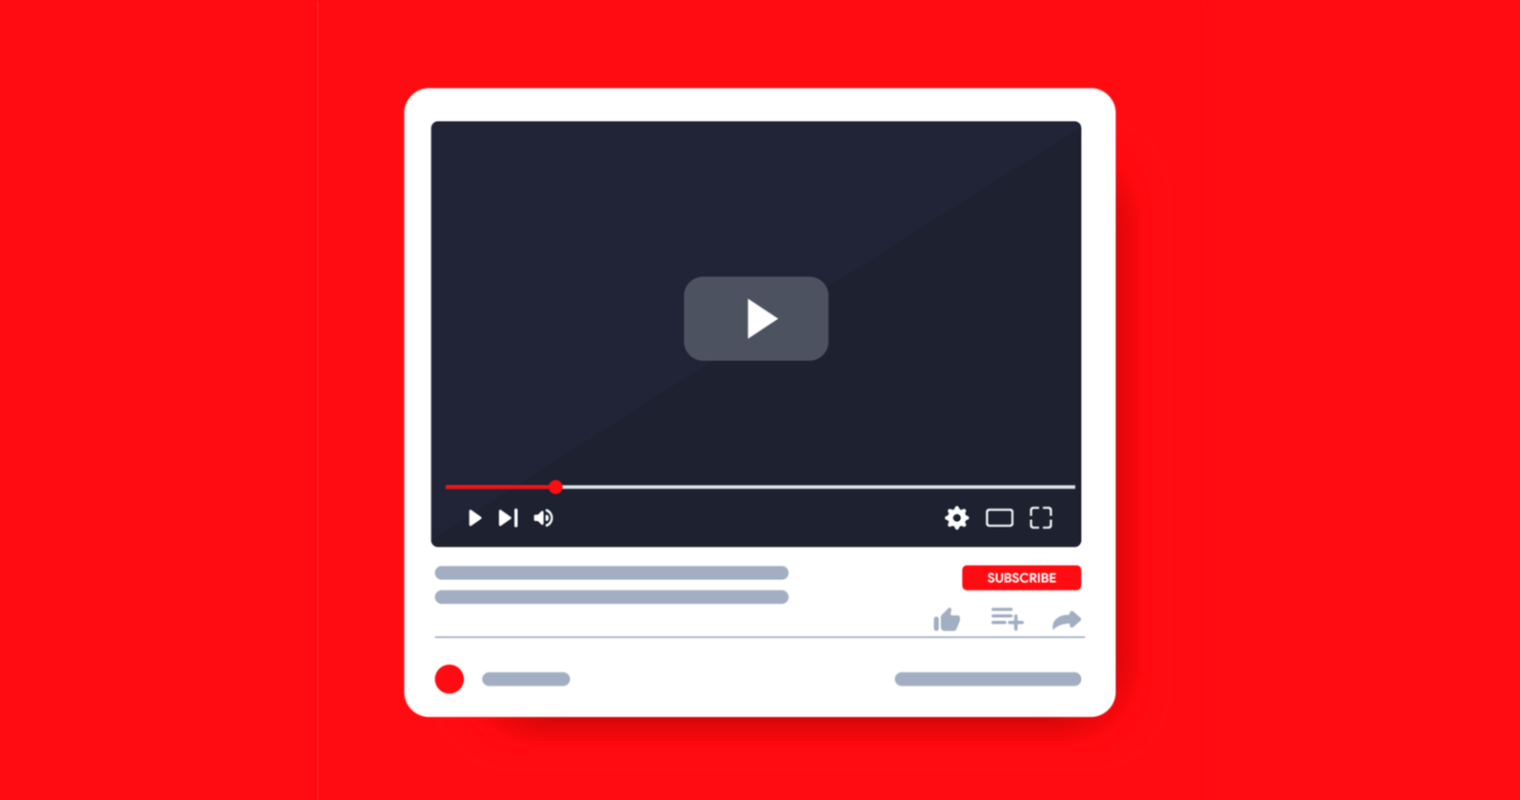 How YouTube Can Make Video Builder a More Useful Tool